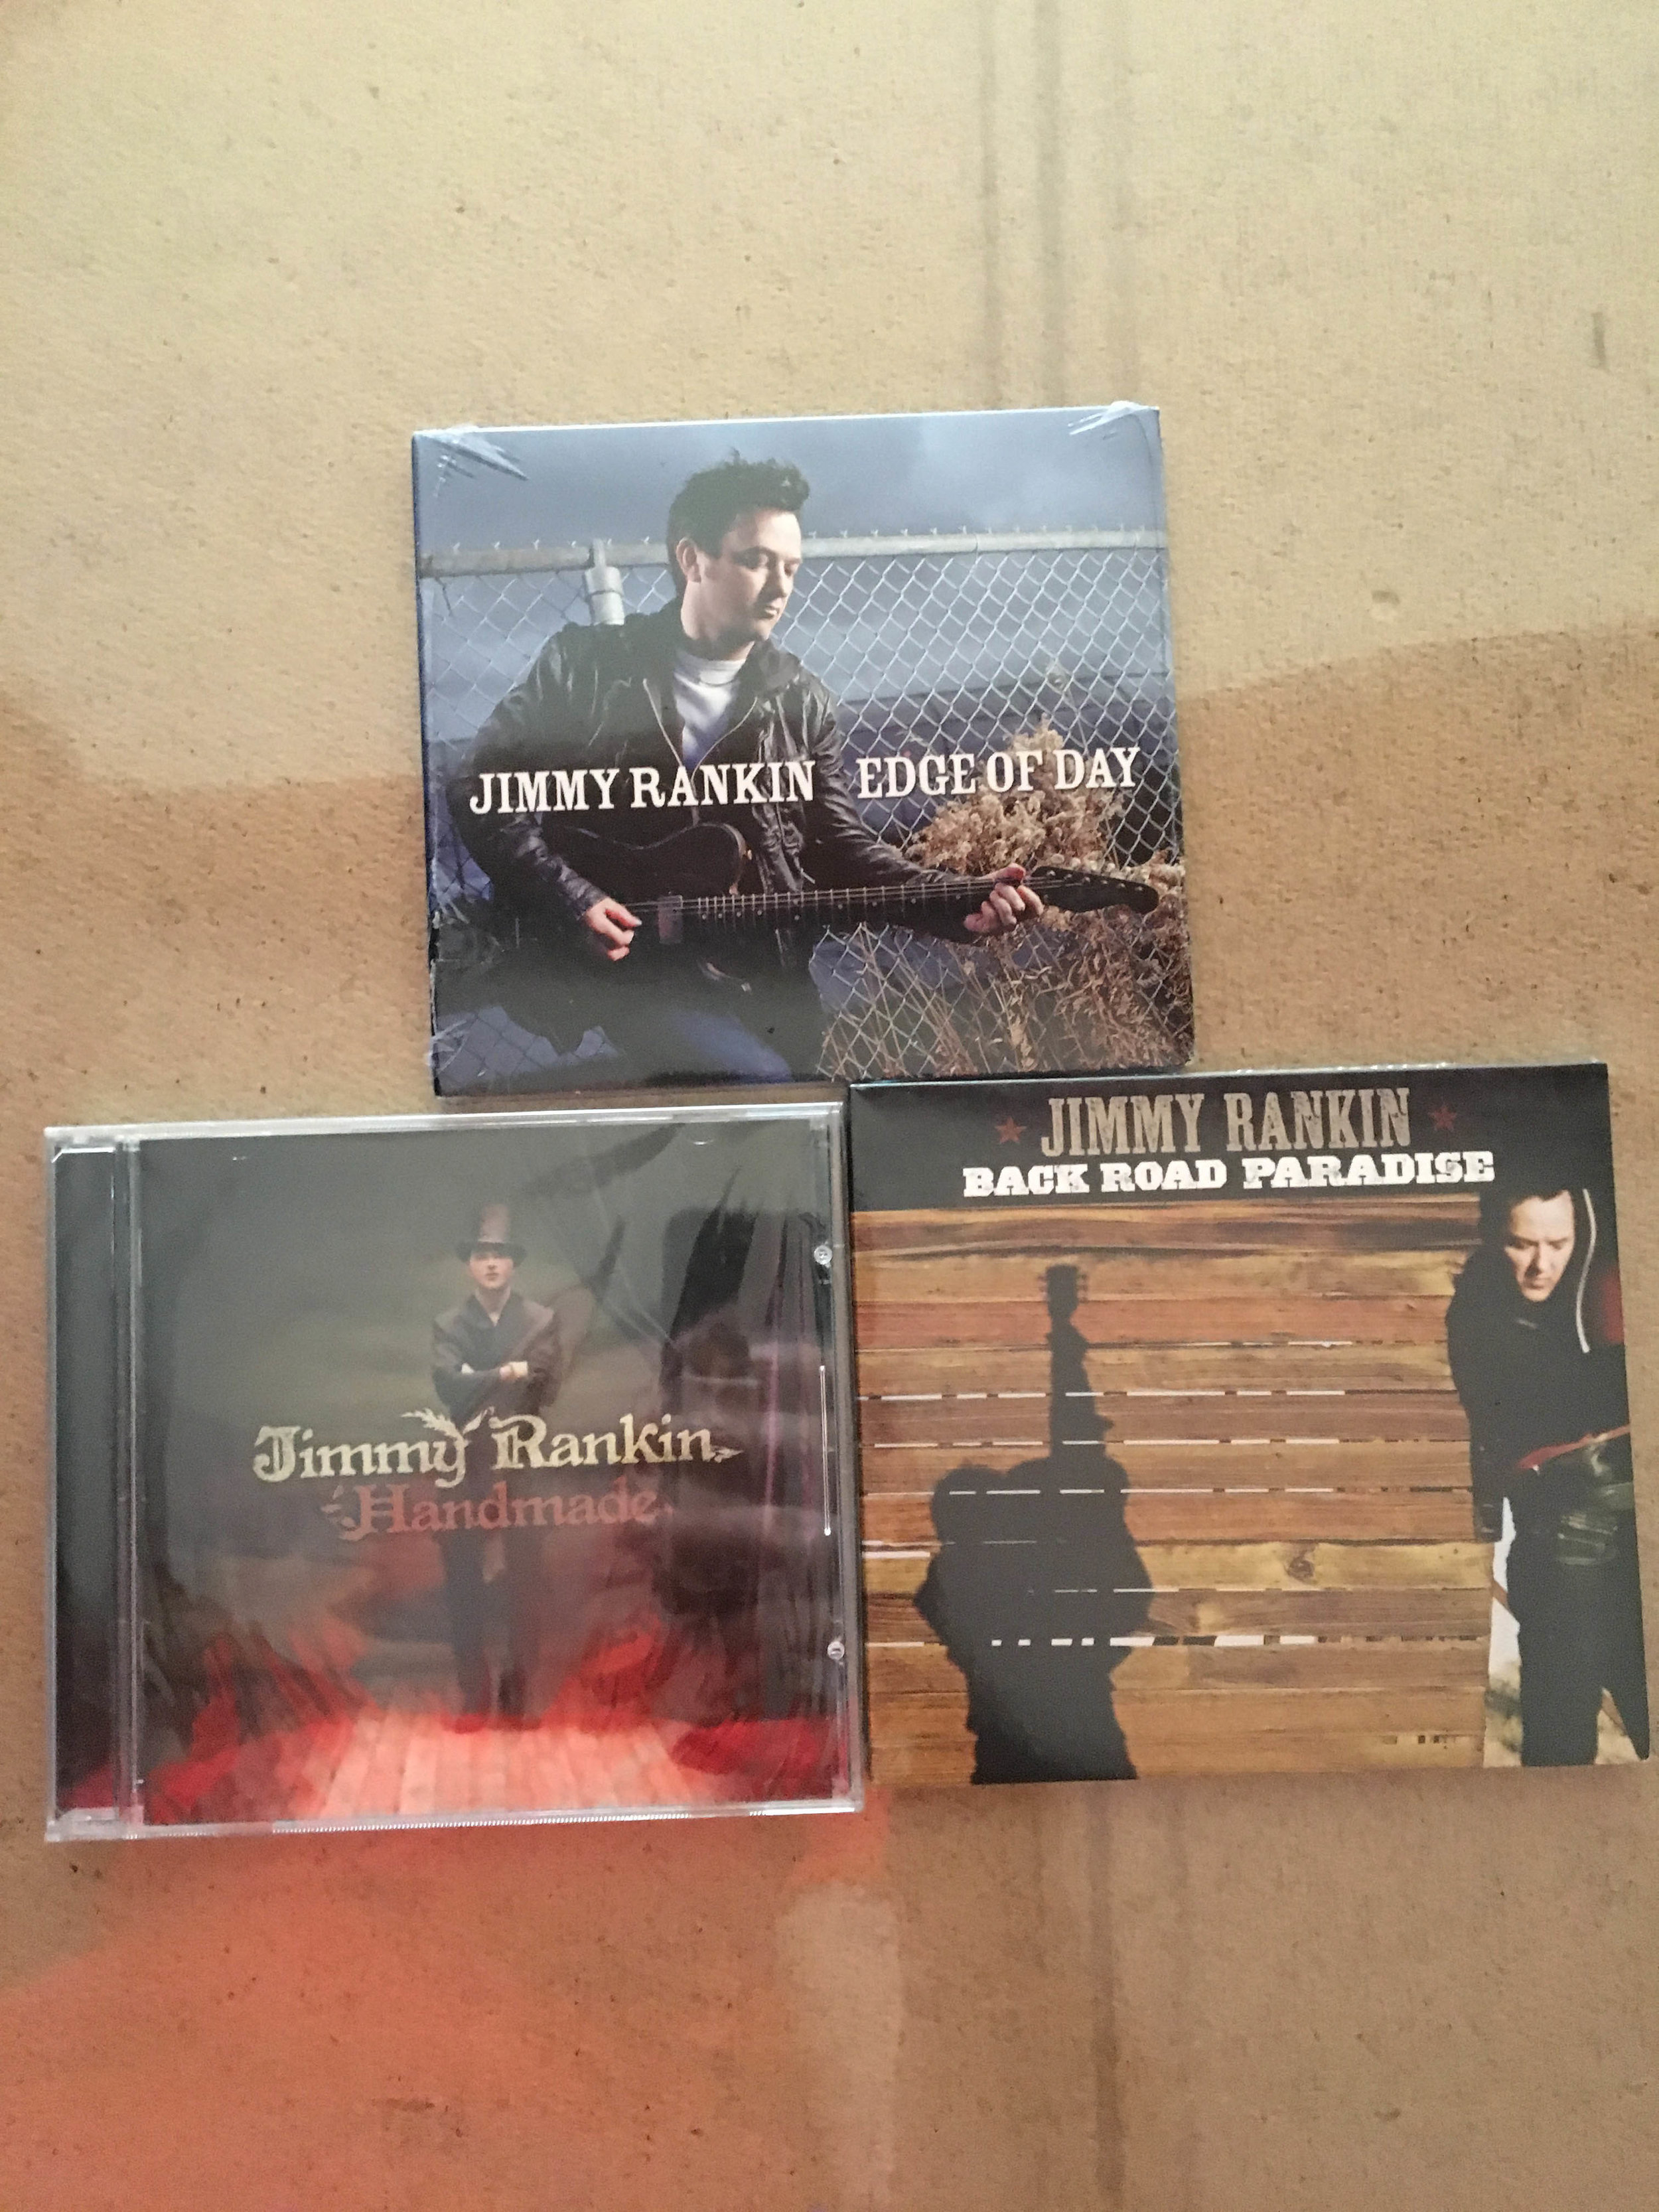 Jimmy Rankin CDs $20+tax -